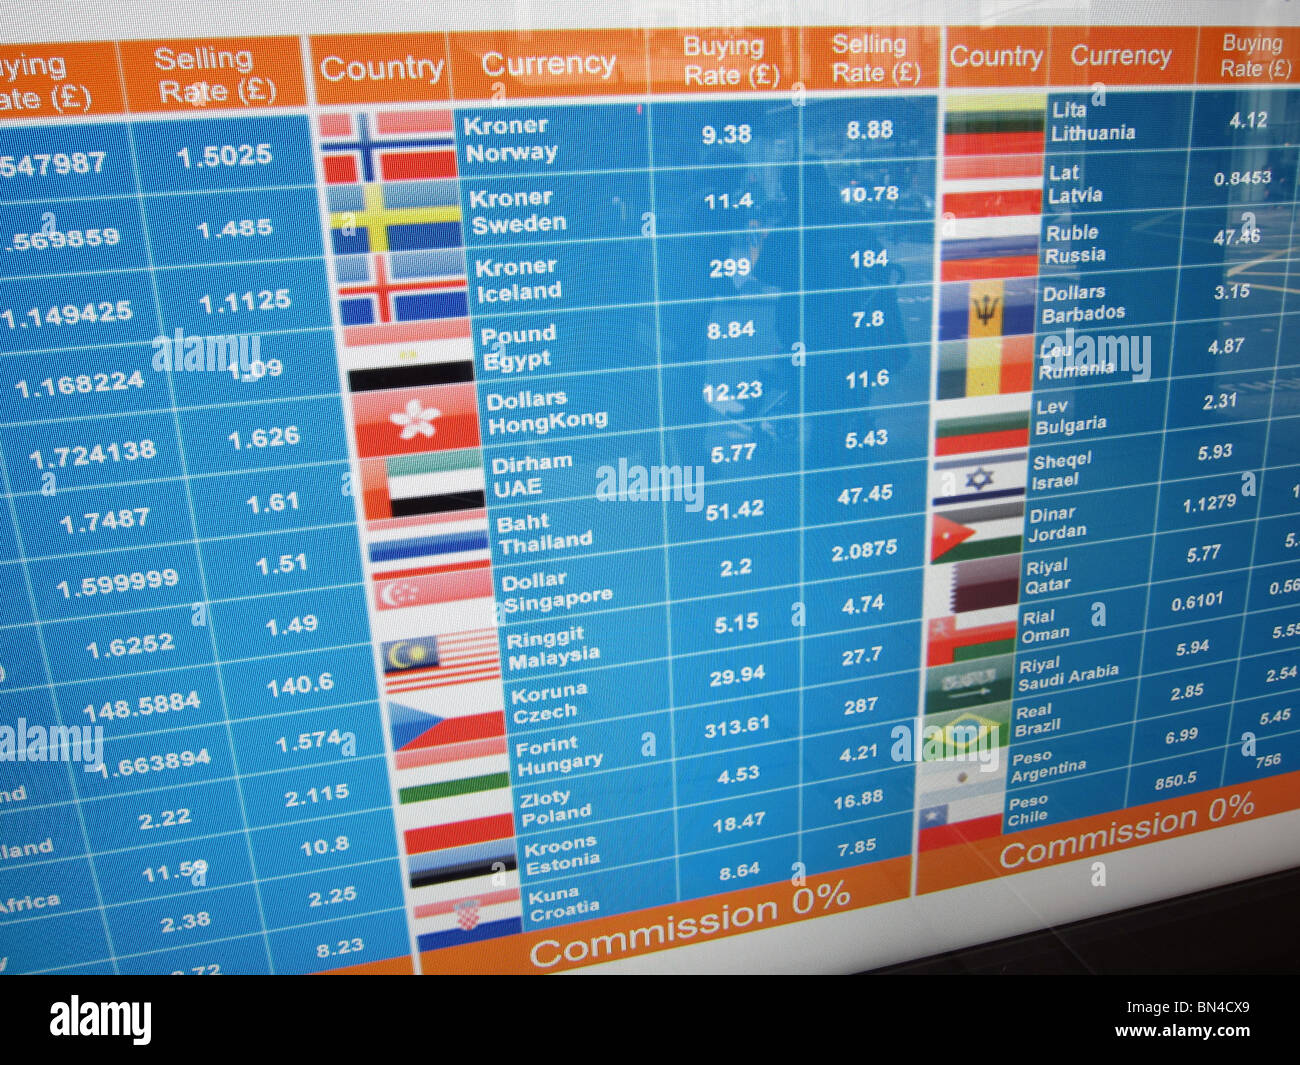 Live streaming forex rates